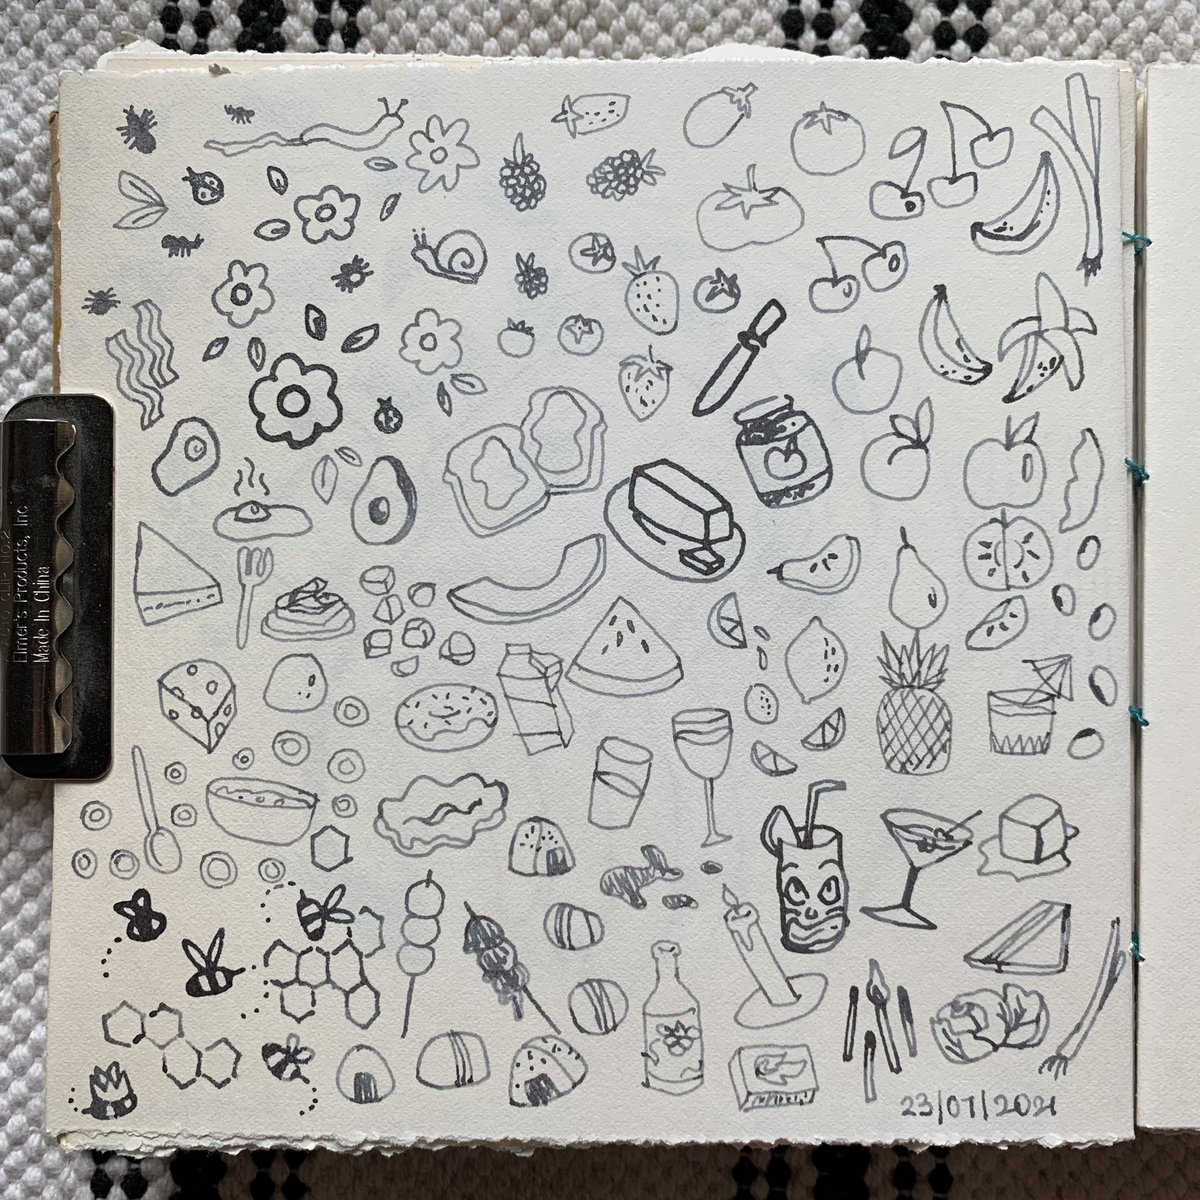 grey ink doodles of various objects from bugs to foods and drinks.